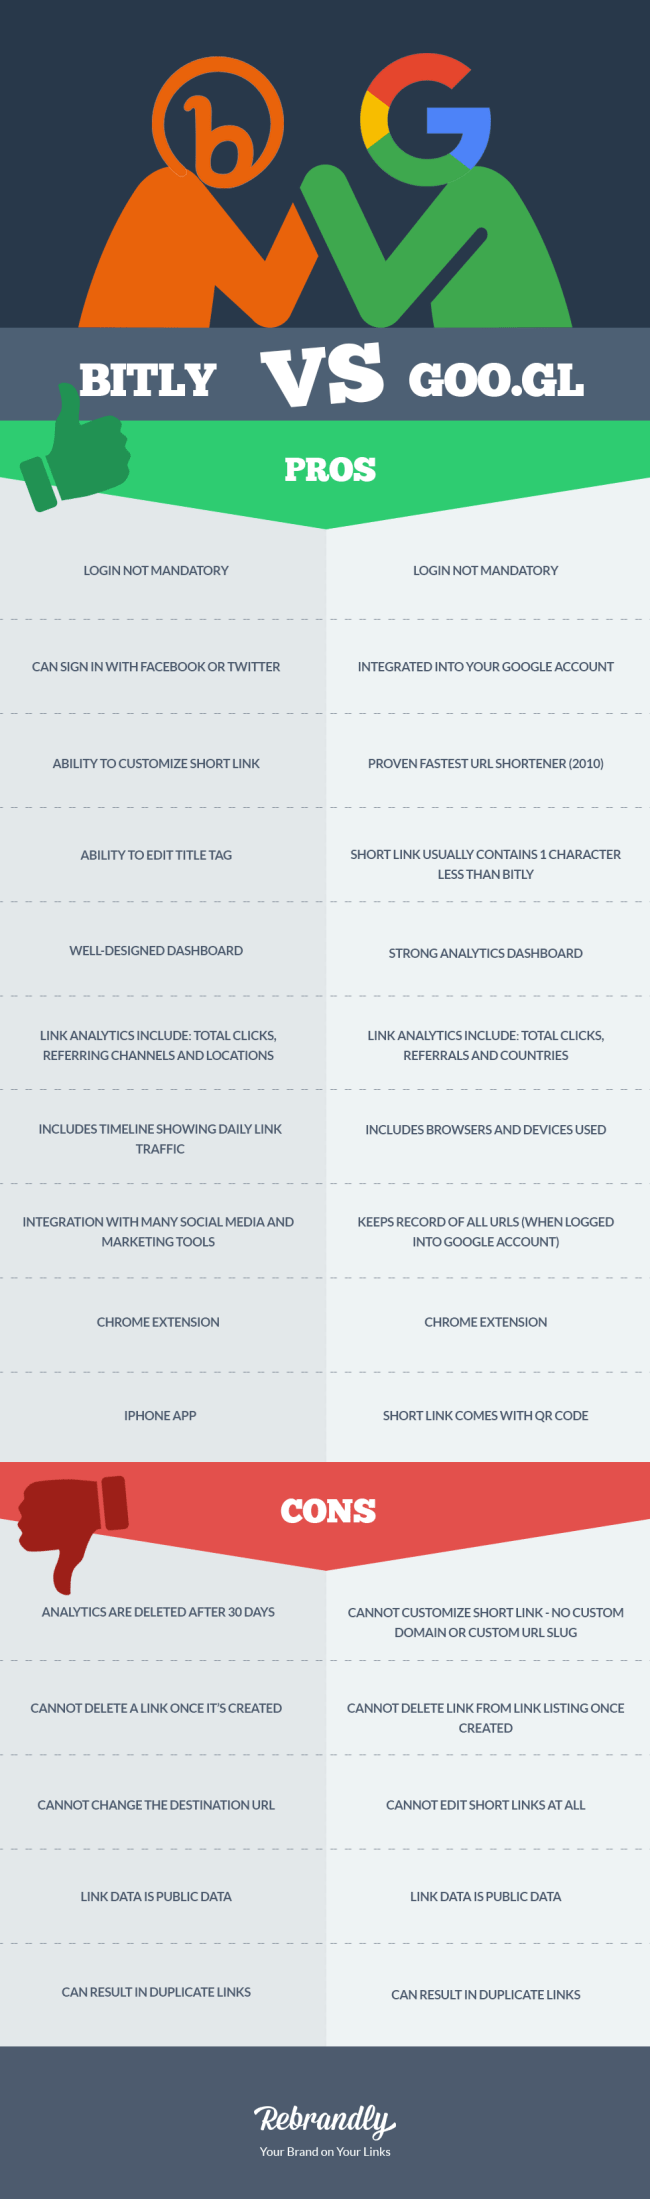 Bitly vs Google Infographic - Rebrandly Blog